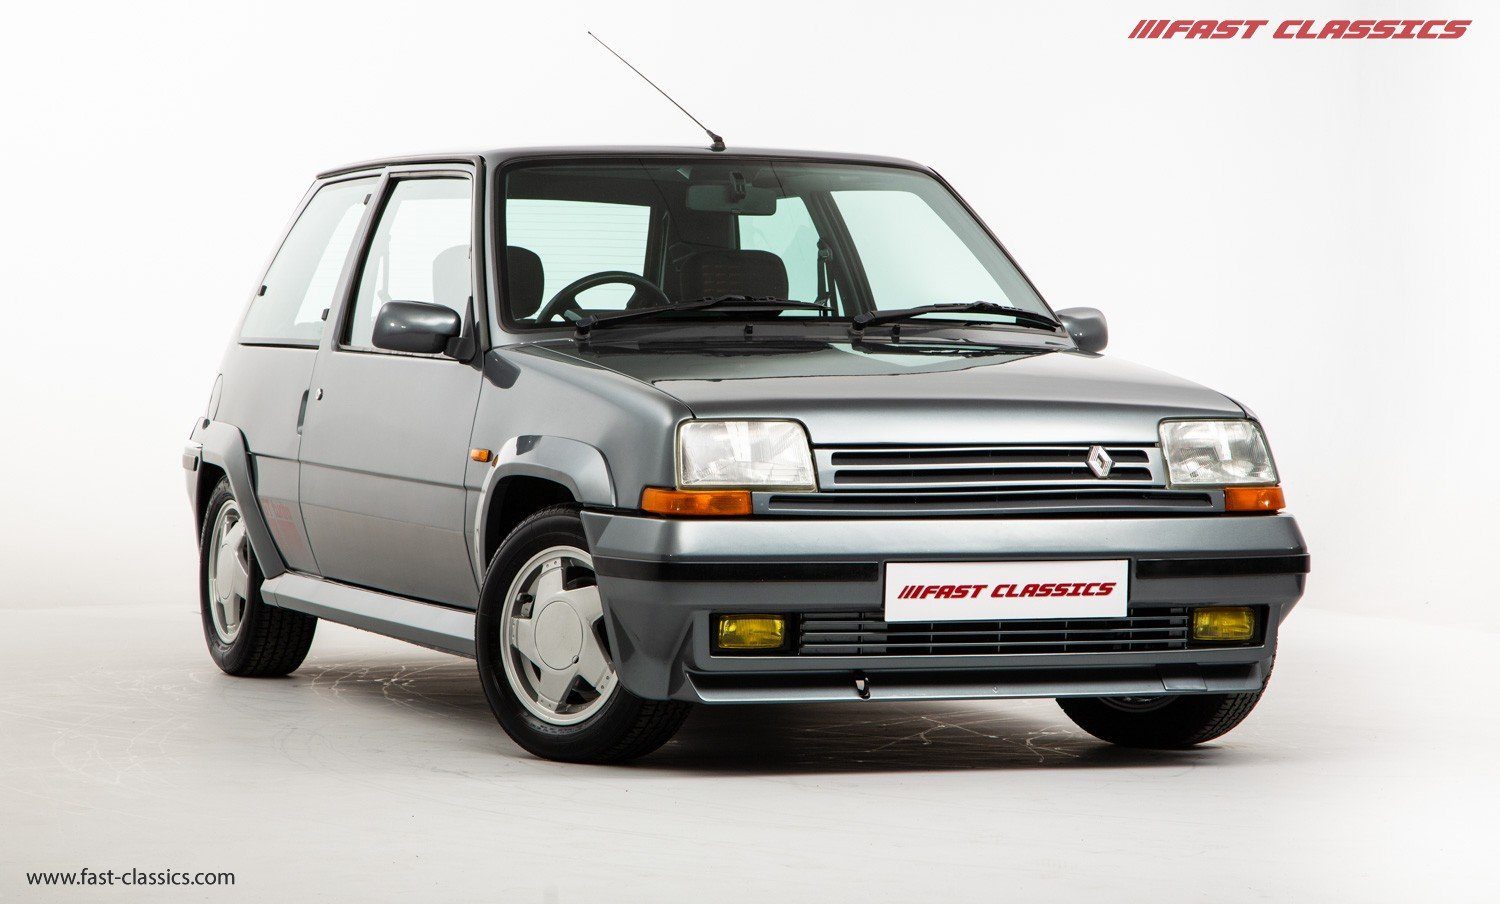 1991 RENAULT R5 GT TURBO // UK RHD // 50K MILES // LATE PRODUCTIO For Sale (picture 4 of 21)